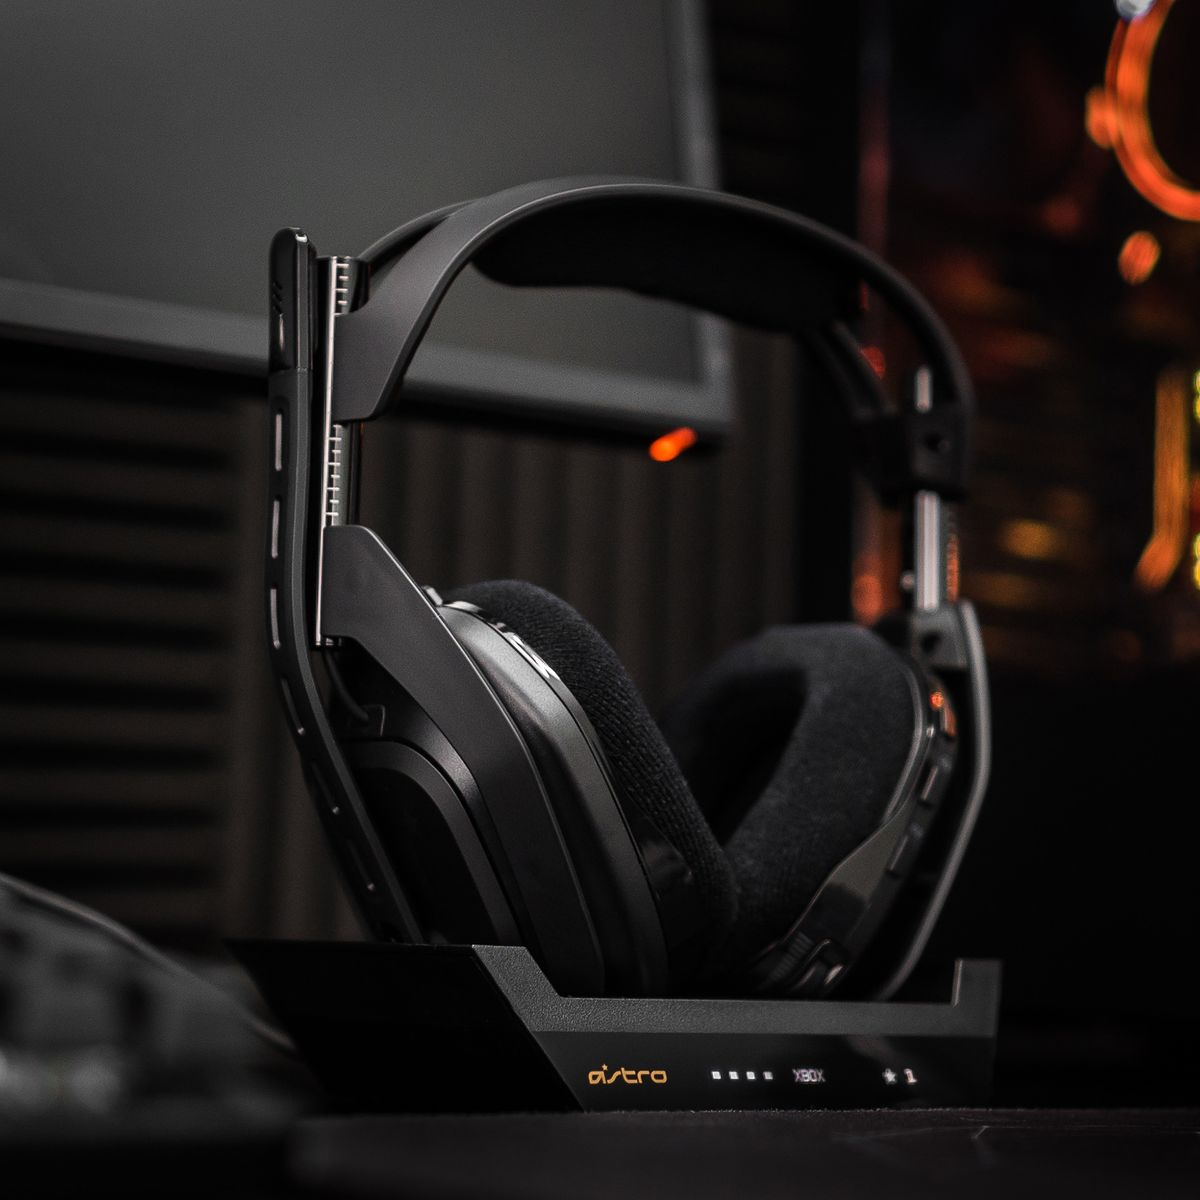 The Astro A50 for Xbox and PC is shown here in its charging cradle.